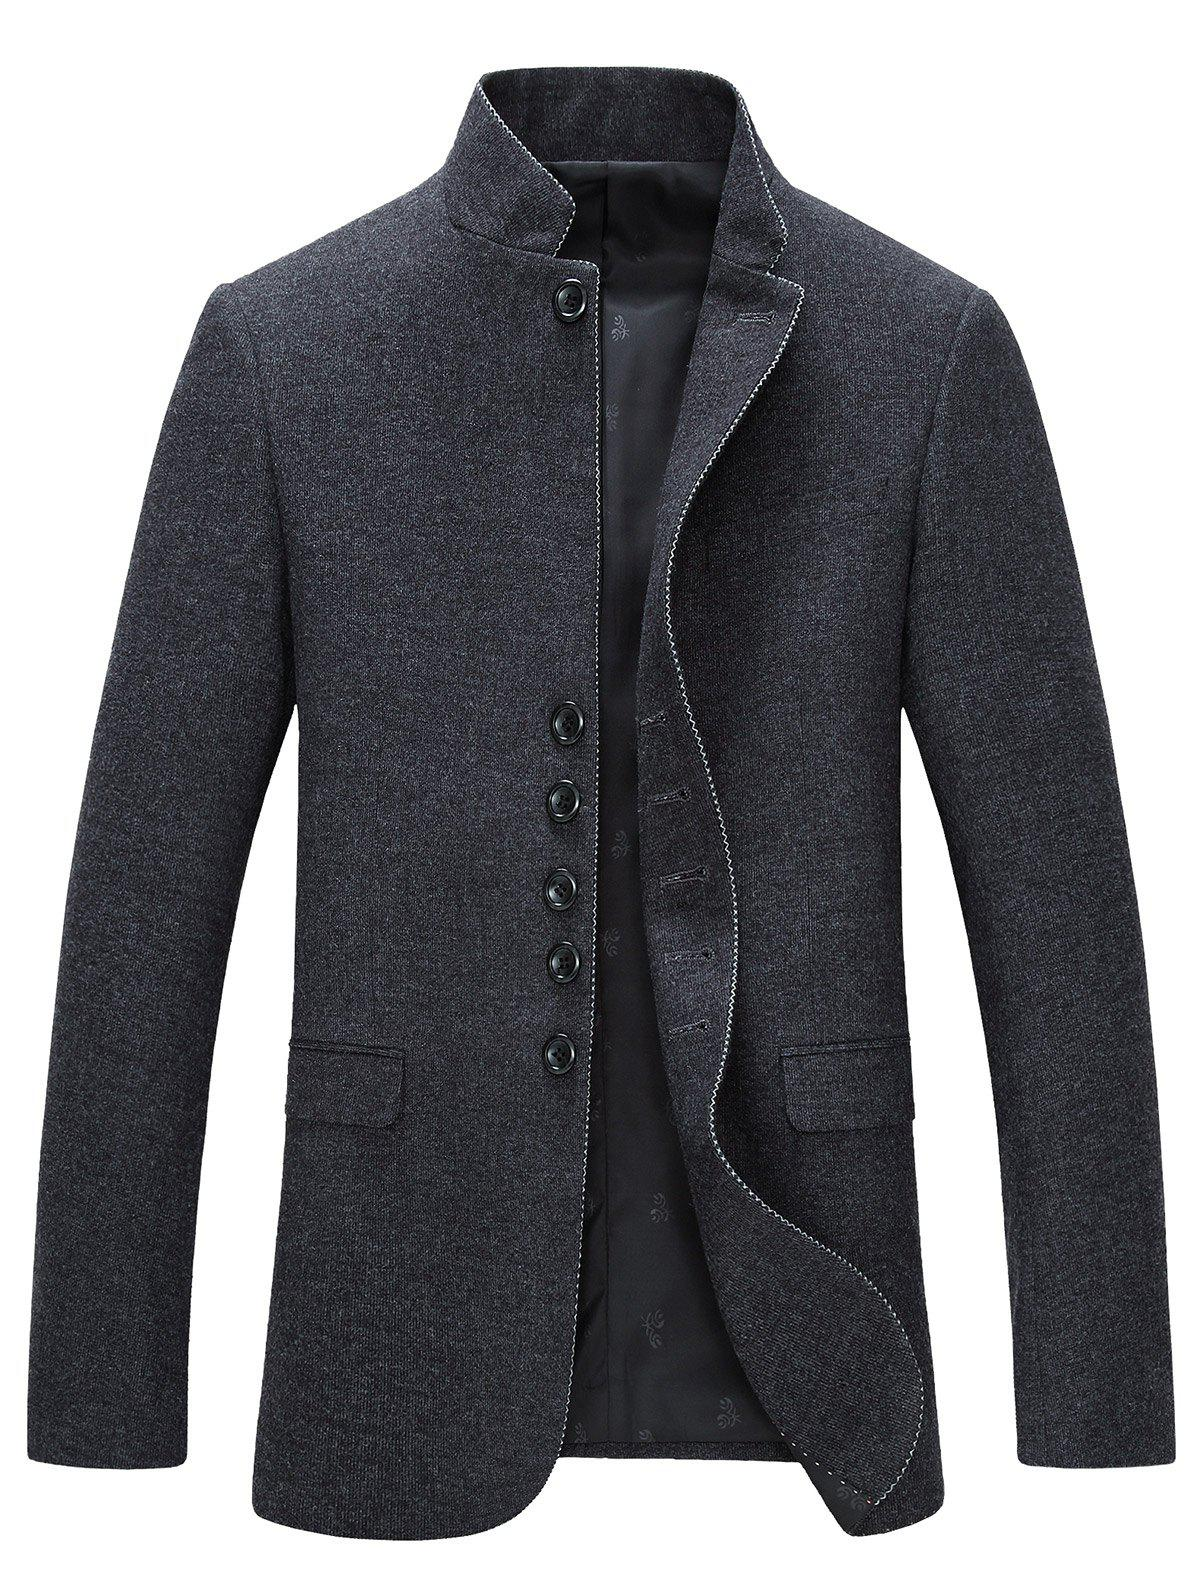 Stand Collar Long Sleeve Single-Breasted Blazer - GRAY 3XL